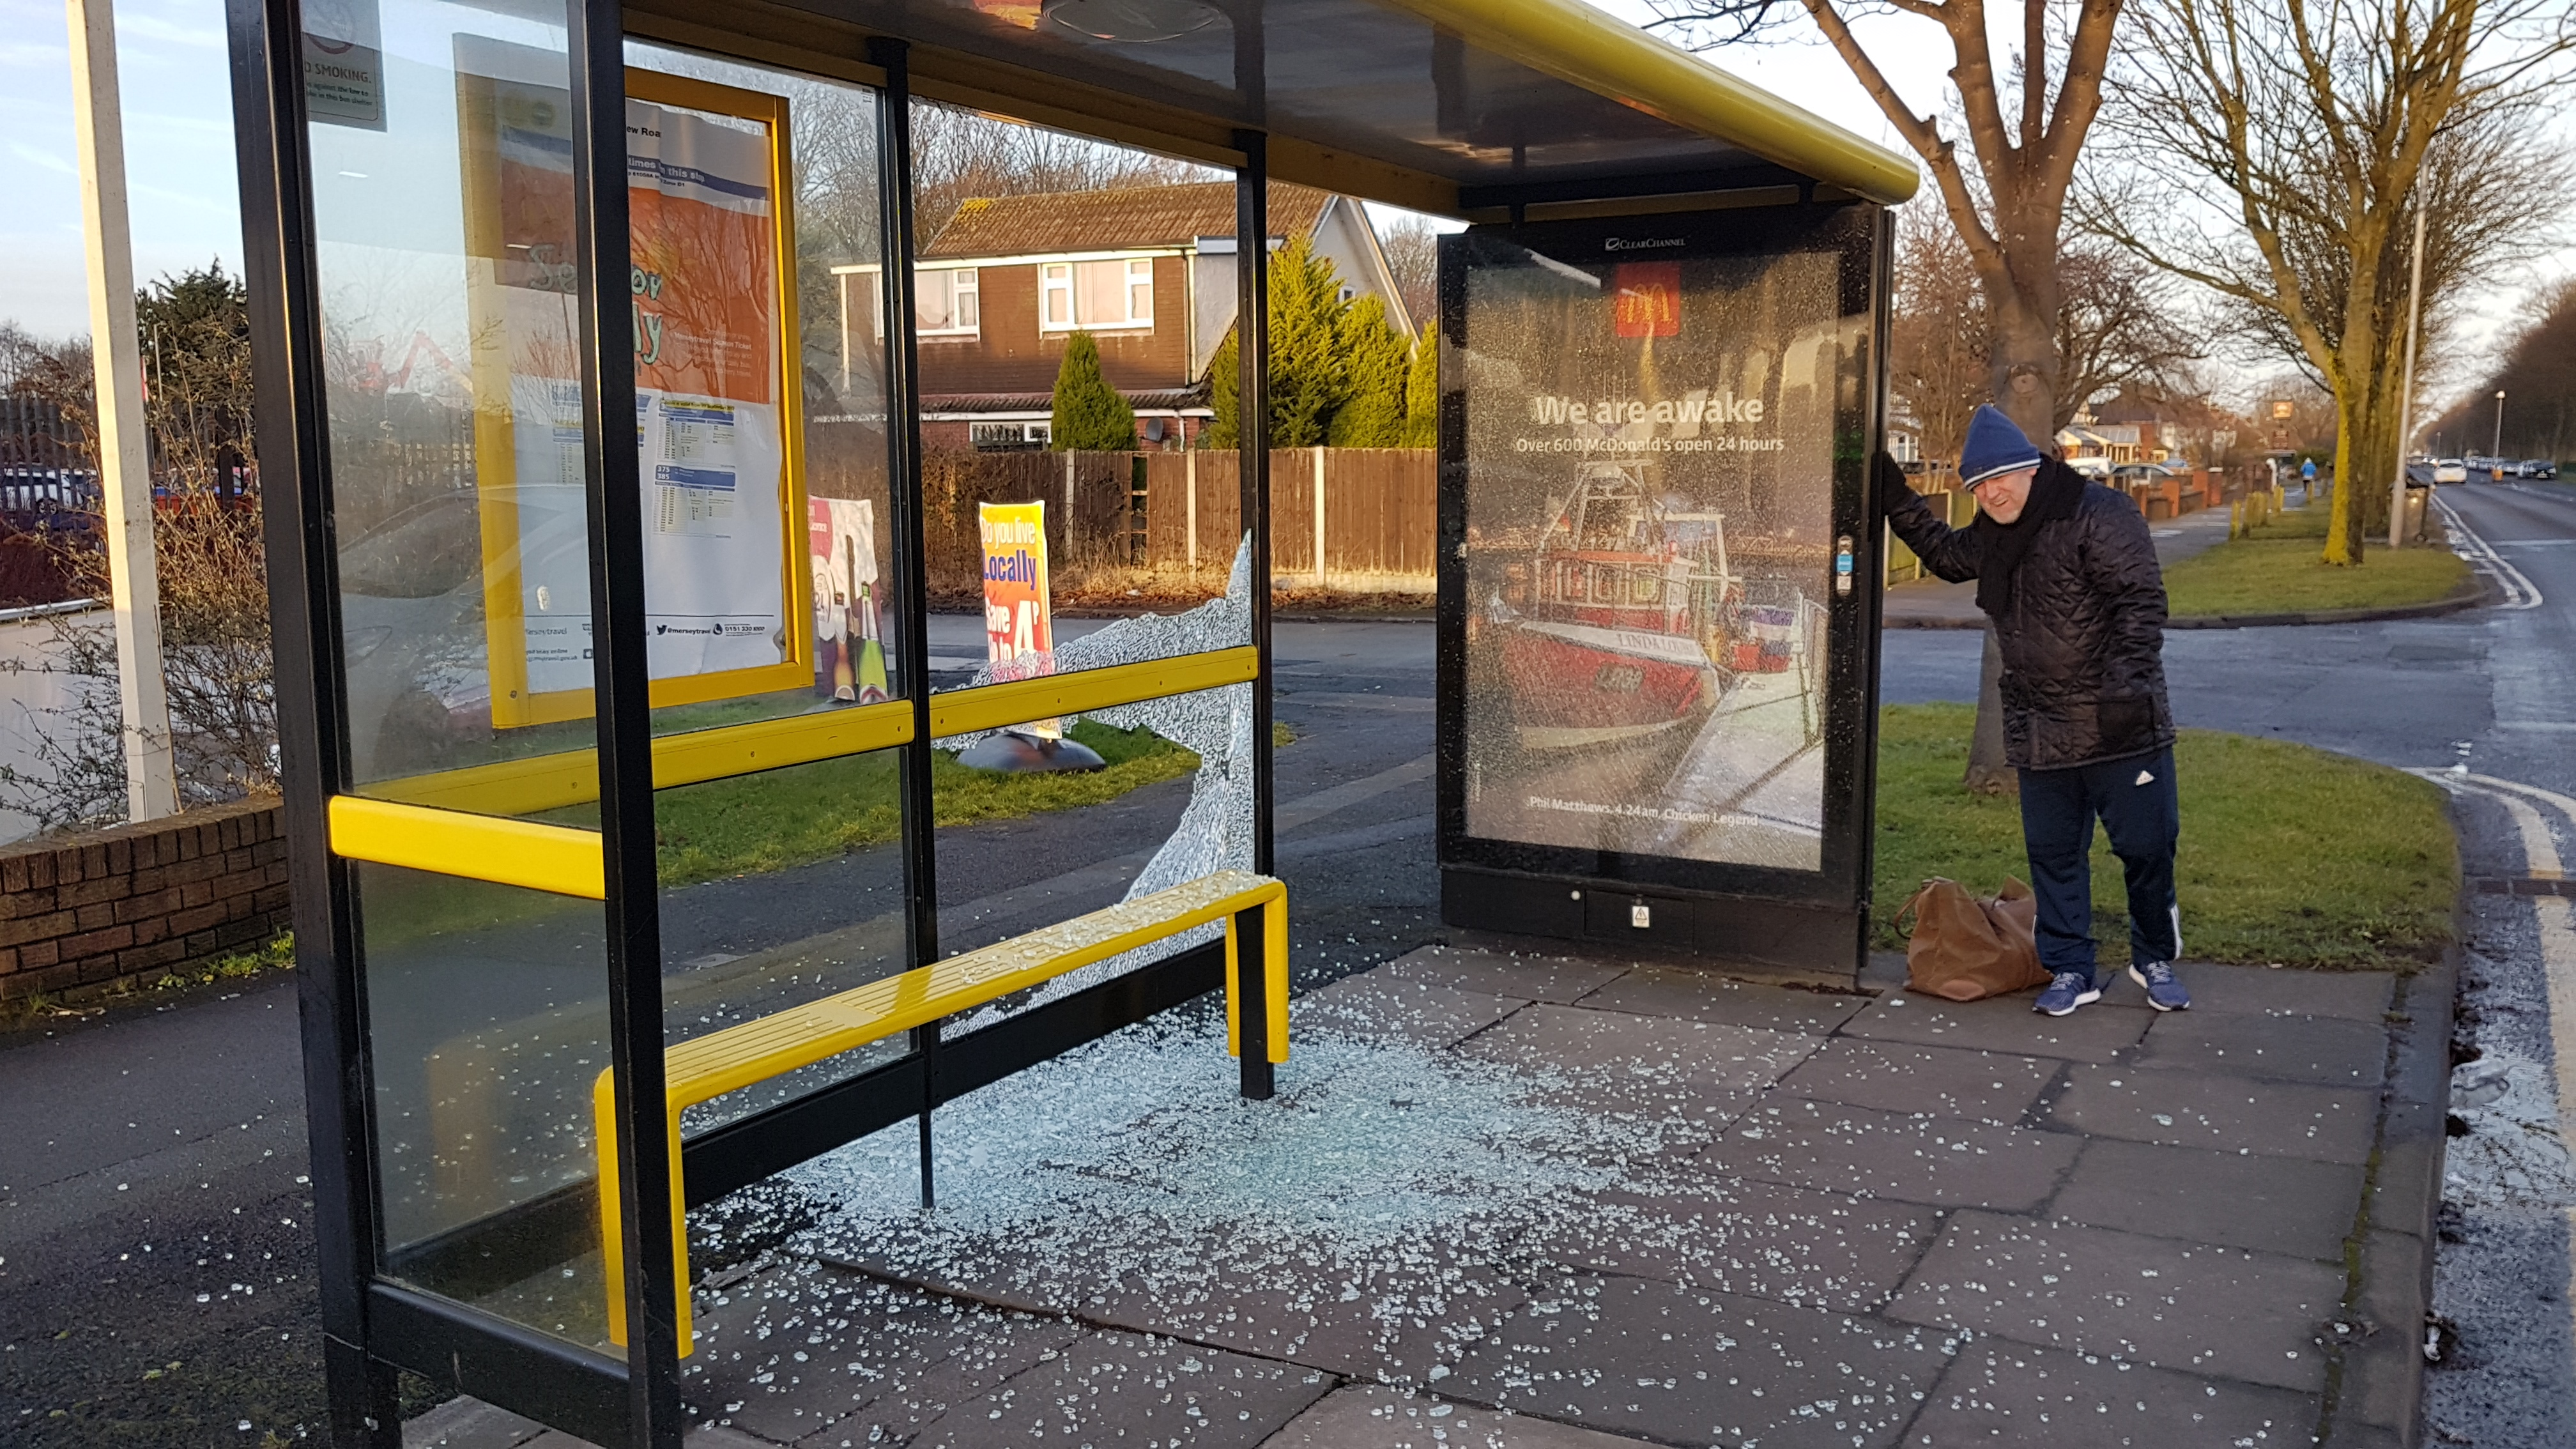 Merseyside Police are investigating a spate of Criminal Damage reports to Bus Shelters, which occurred in the Southport area yesterday evening (19/02/18). Three suspects aged 18 & 19 yrs were arrested and remain in police custody whilst the investigation remains on going.      Southports tribe of...